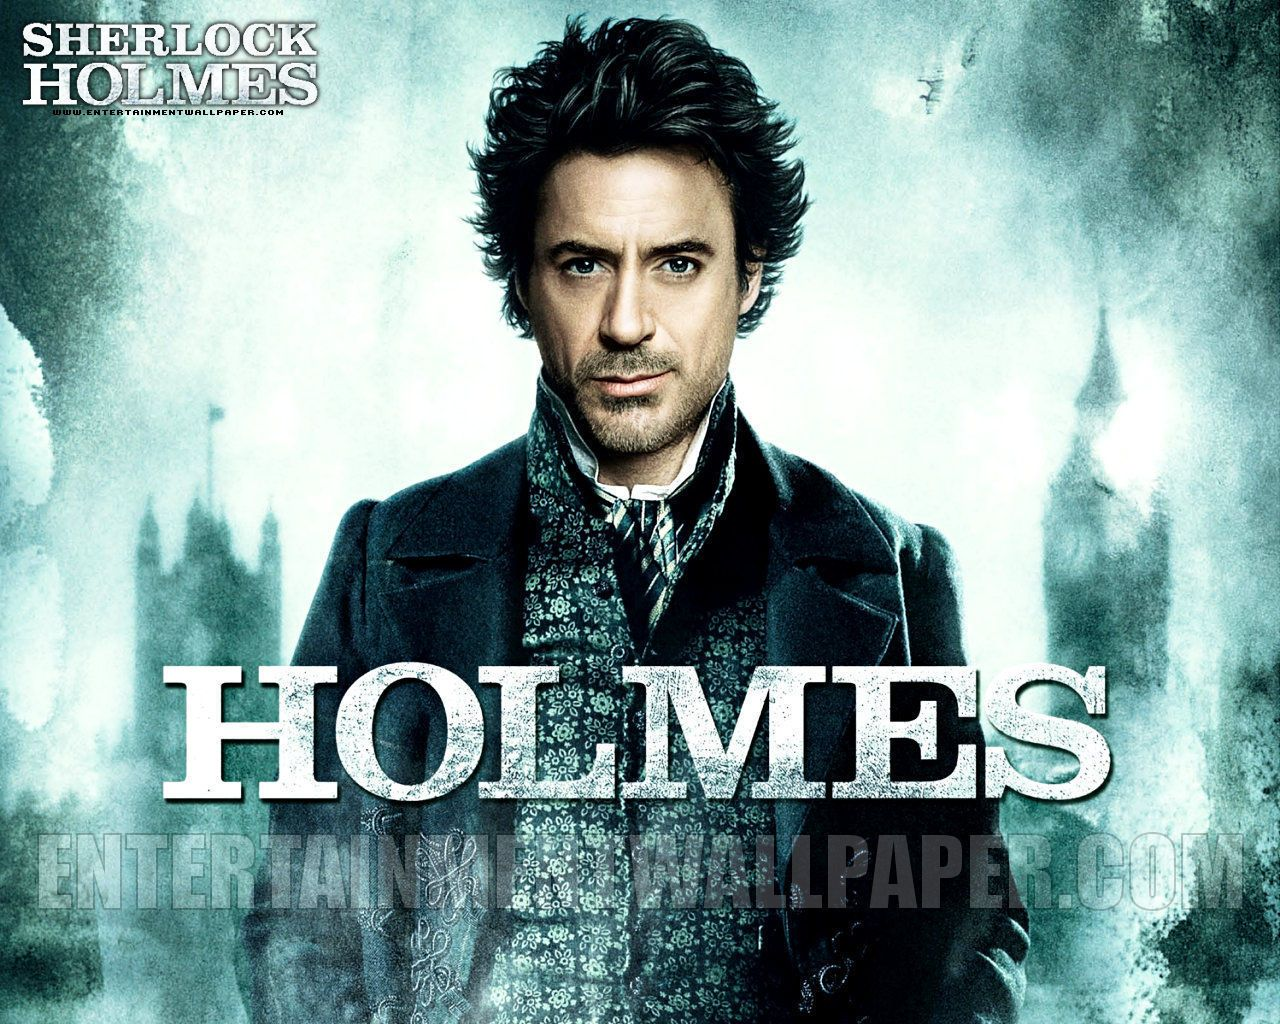 Image Detail For Holmes Robert Downey Jr As Sherlock Holmes Wallpaper 1311928 Holmes Movie Sherlock Holmes Robert Downey Jr Sherlock Holmes Robert Downey